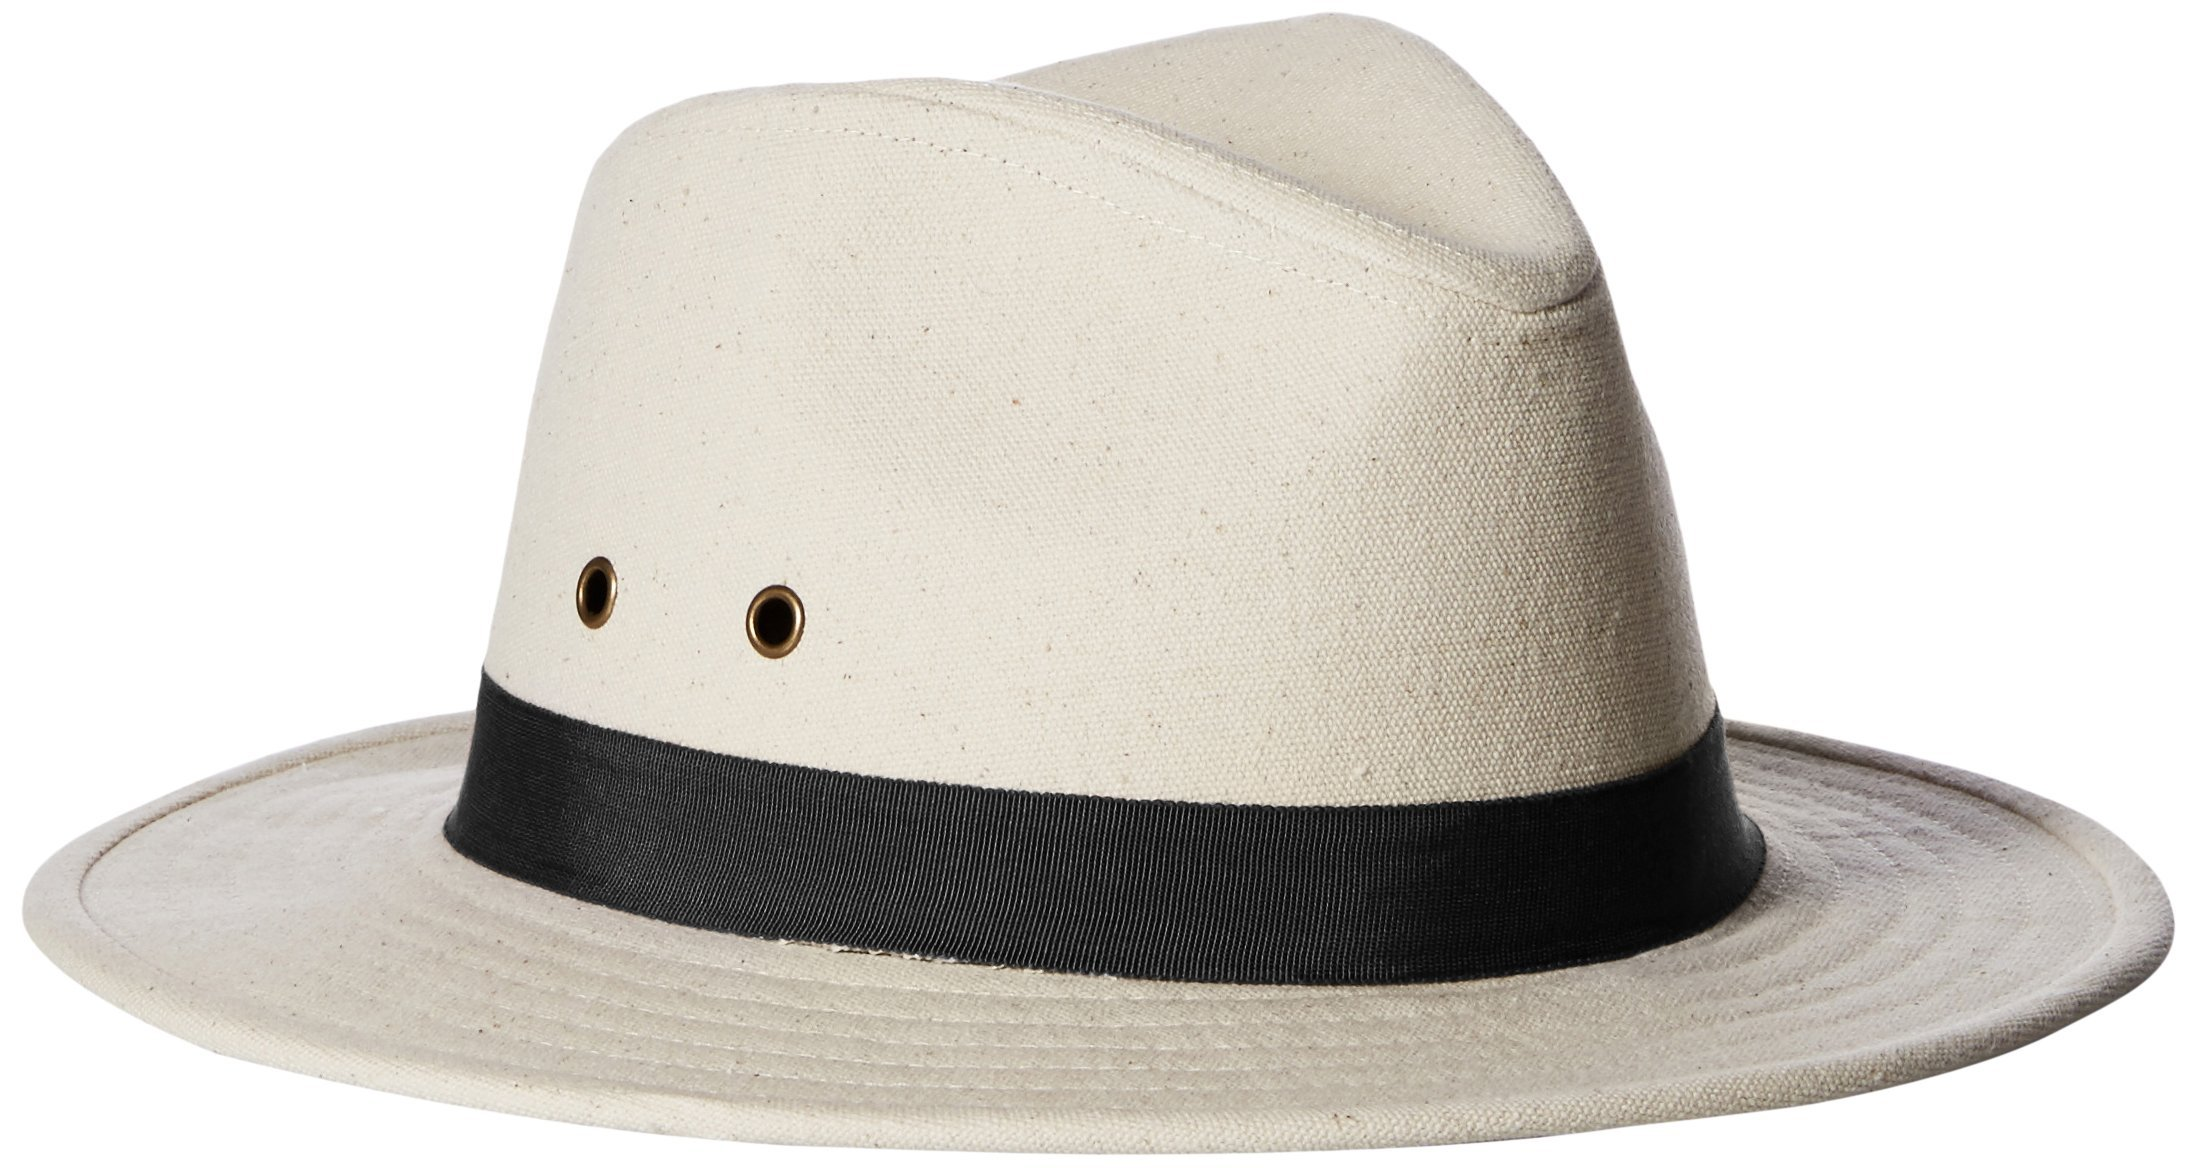 'ale by alessandra Women's Skyler Adjustable Canvas Fedora Hat with UPF 50+, Natural/Black, Adjustable Head Size